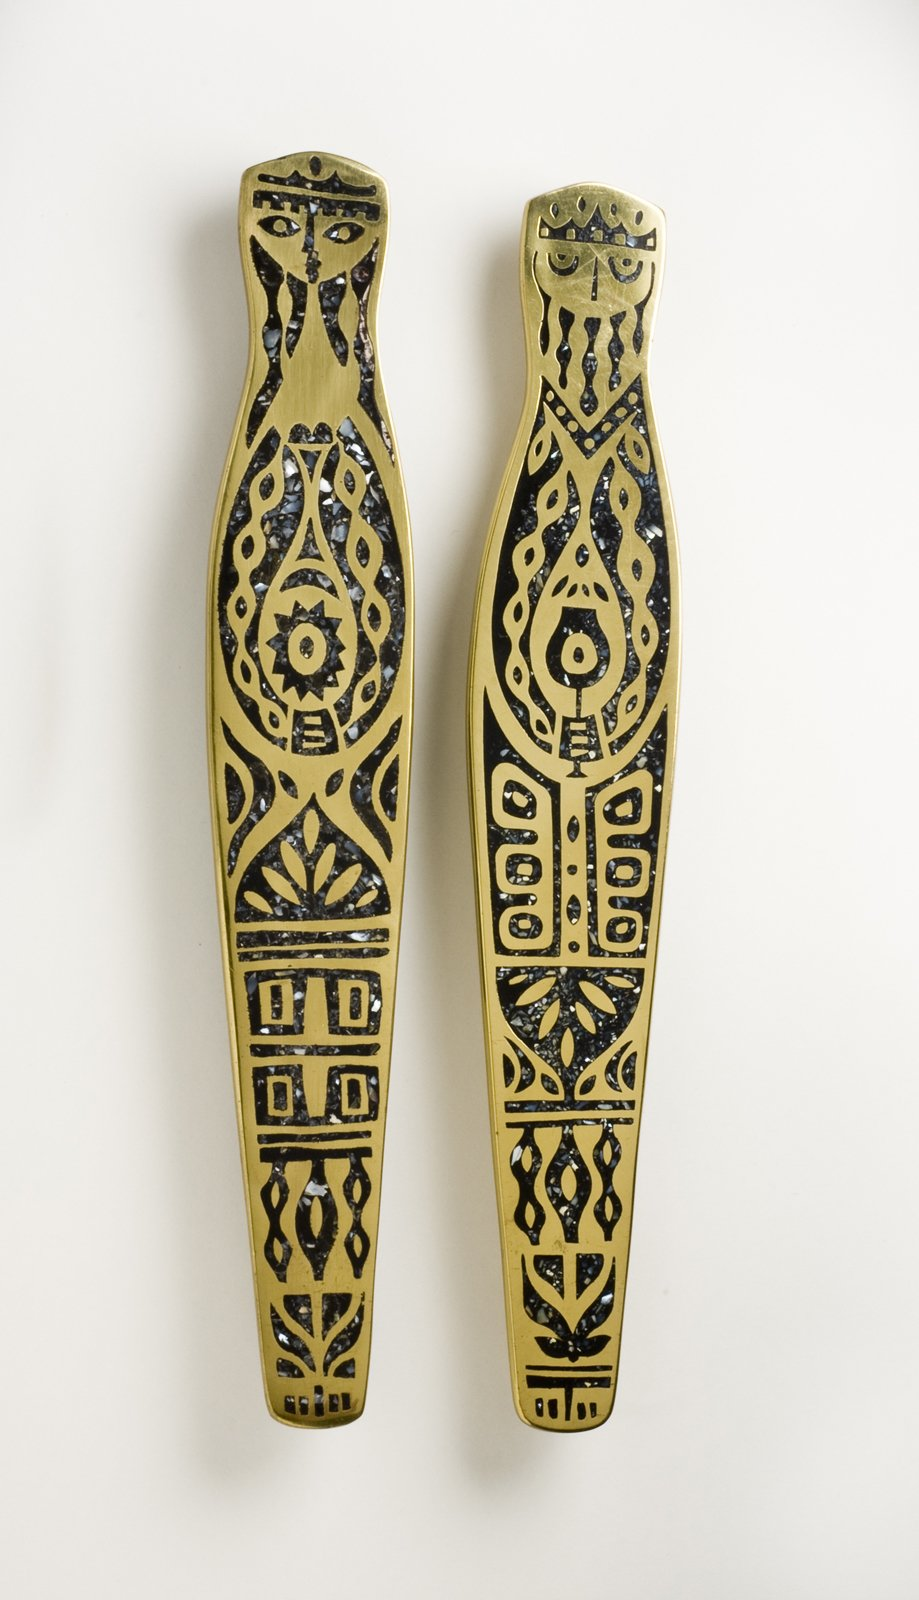 King and Queen Door Pulls, hand-cast brass with black mother-of-pearl inlay, Evelyn Ackerman, 1959.  A Marriage of Craft and Design by Miyoko Ohtake